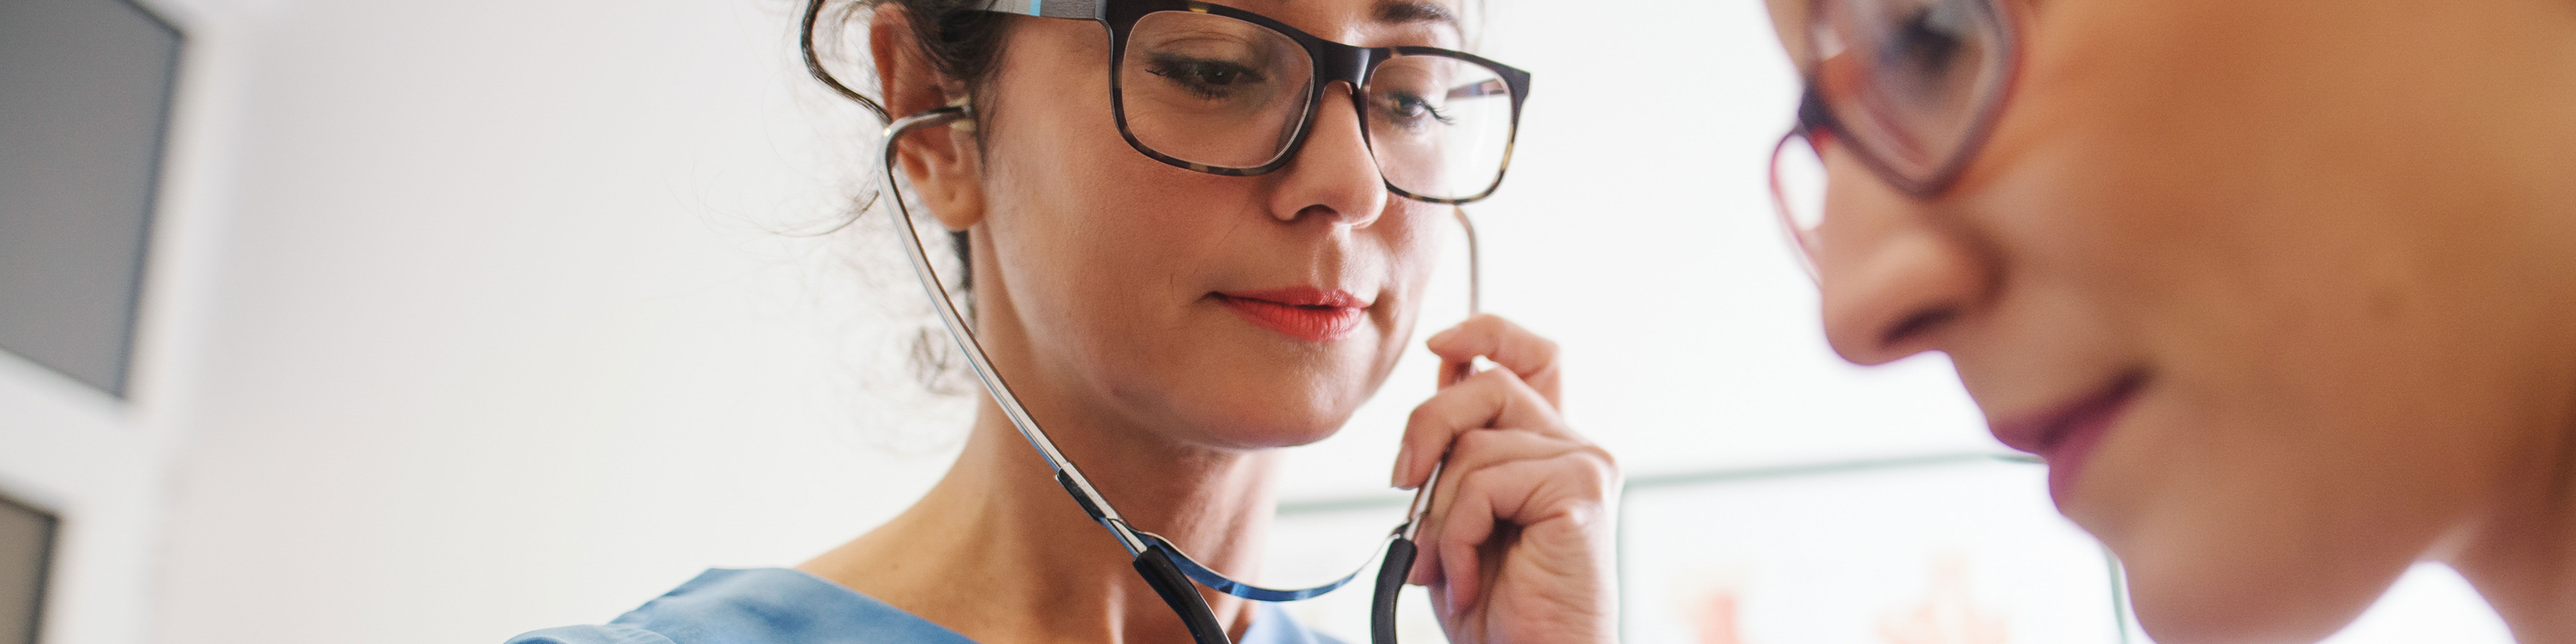 3 Things Every Nurse Should Do to Provide a Culture of Caring